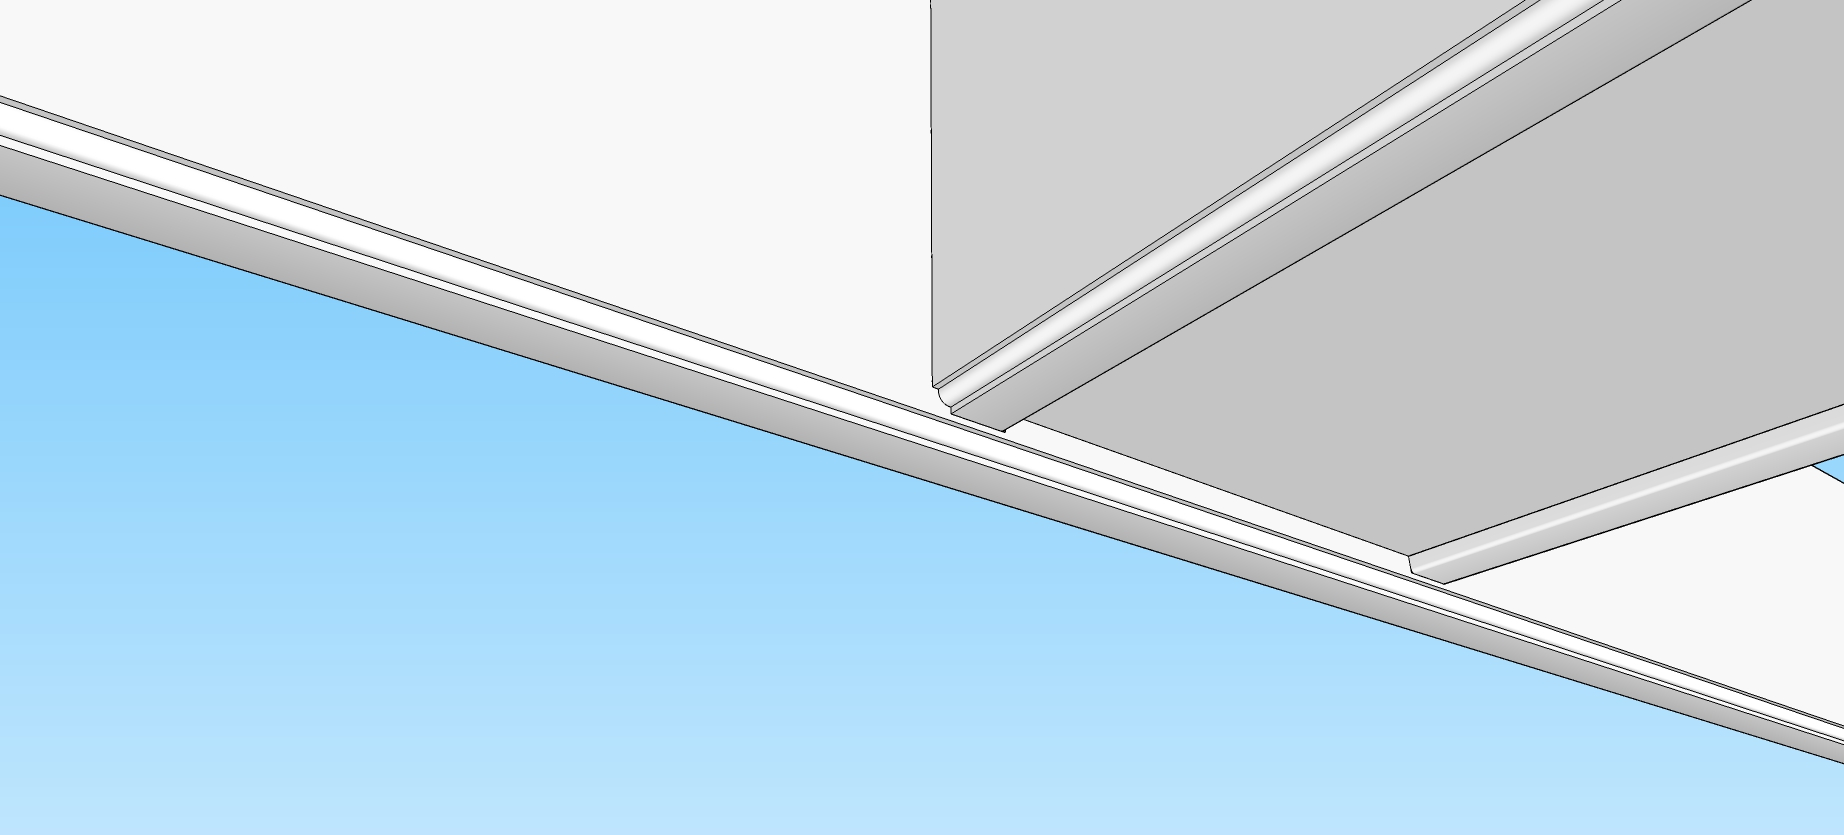 Dealing With Beam Height Offsets For Coffered Ceiling?-beam-heights.jpg